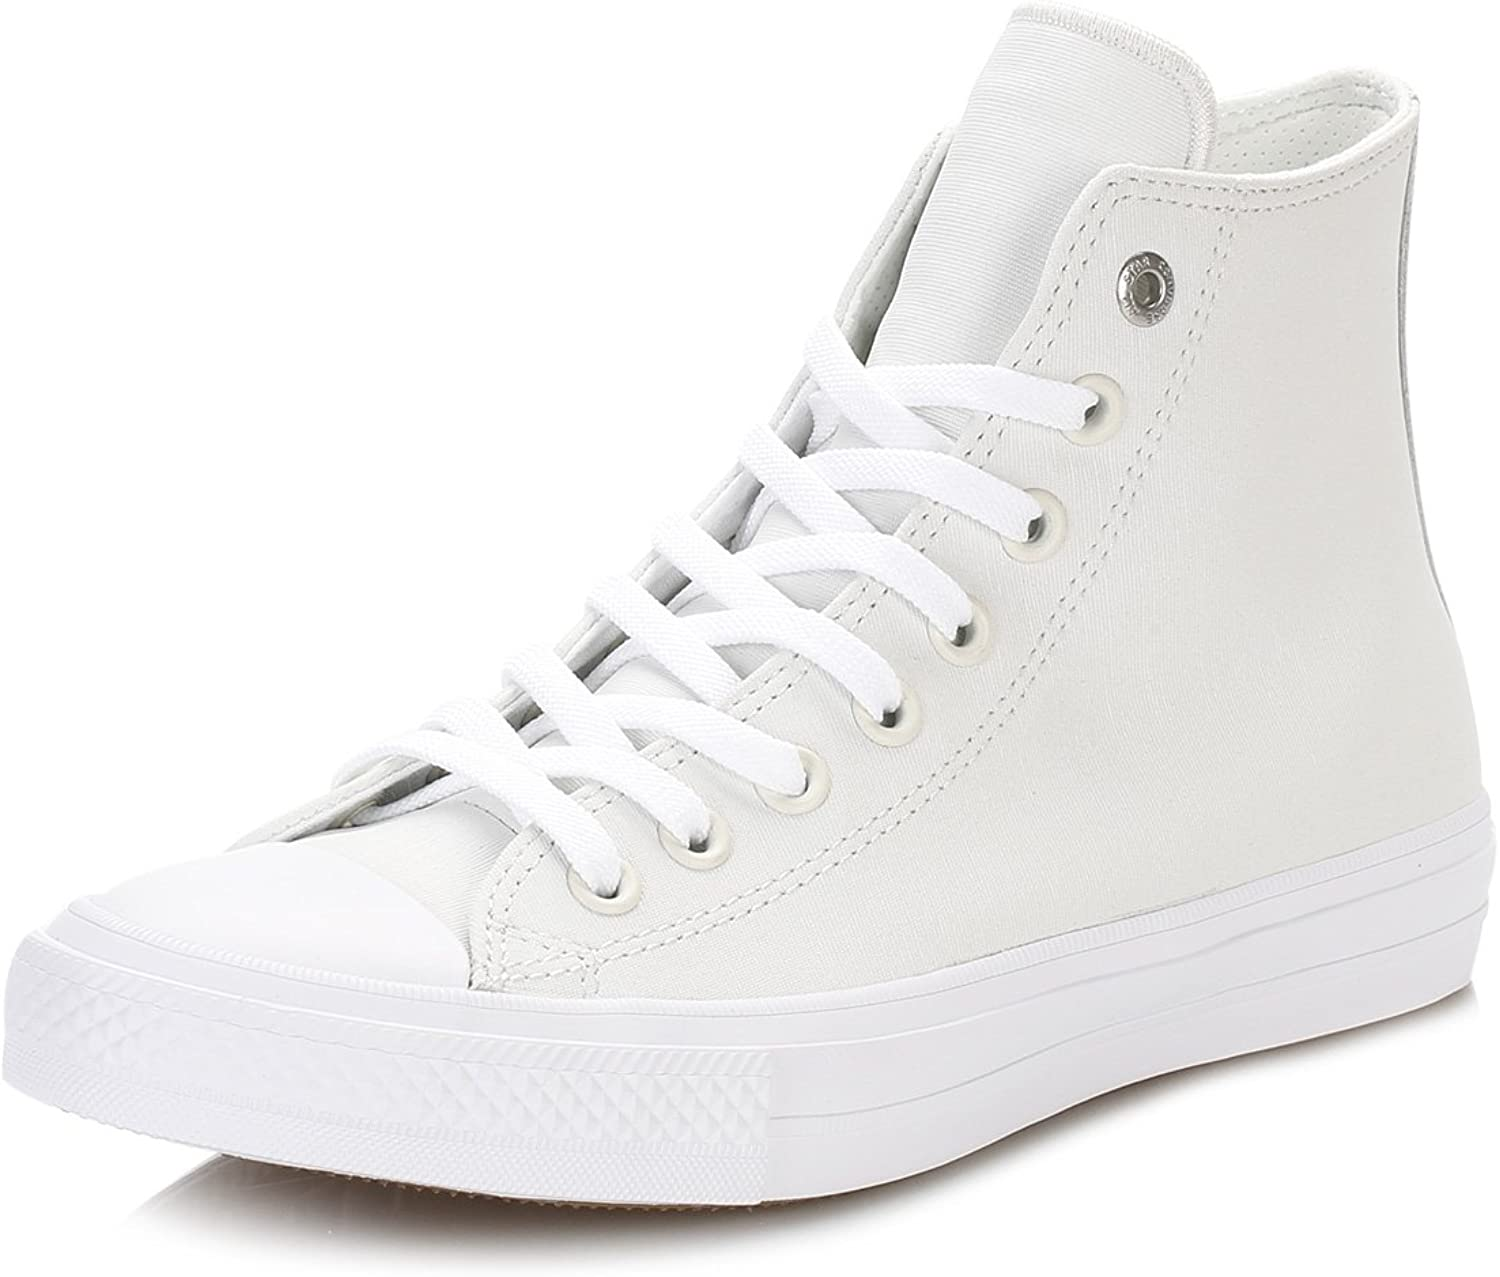 Converse Womens Chuck Taylor All Star II Hi White Leather Trainers 9 US